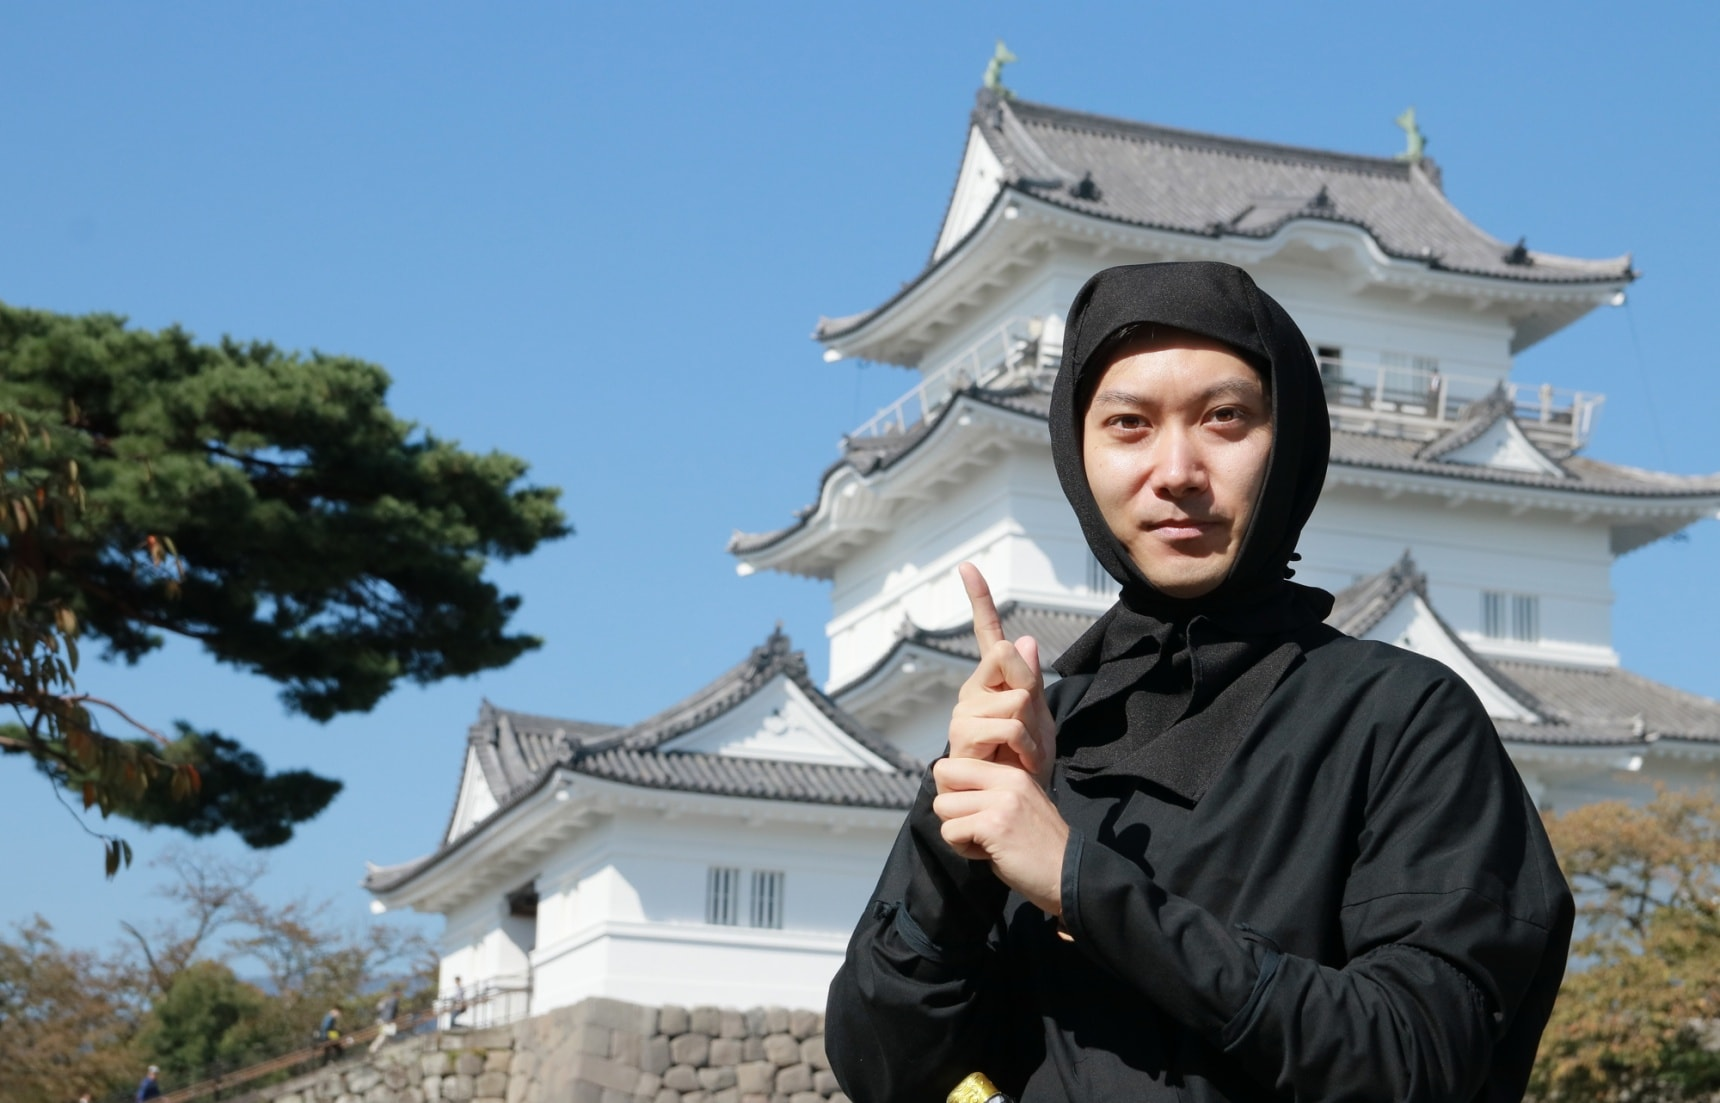 Become a Ninja at Odawara Castle